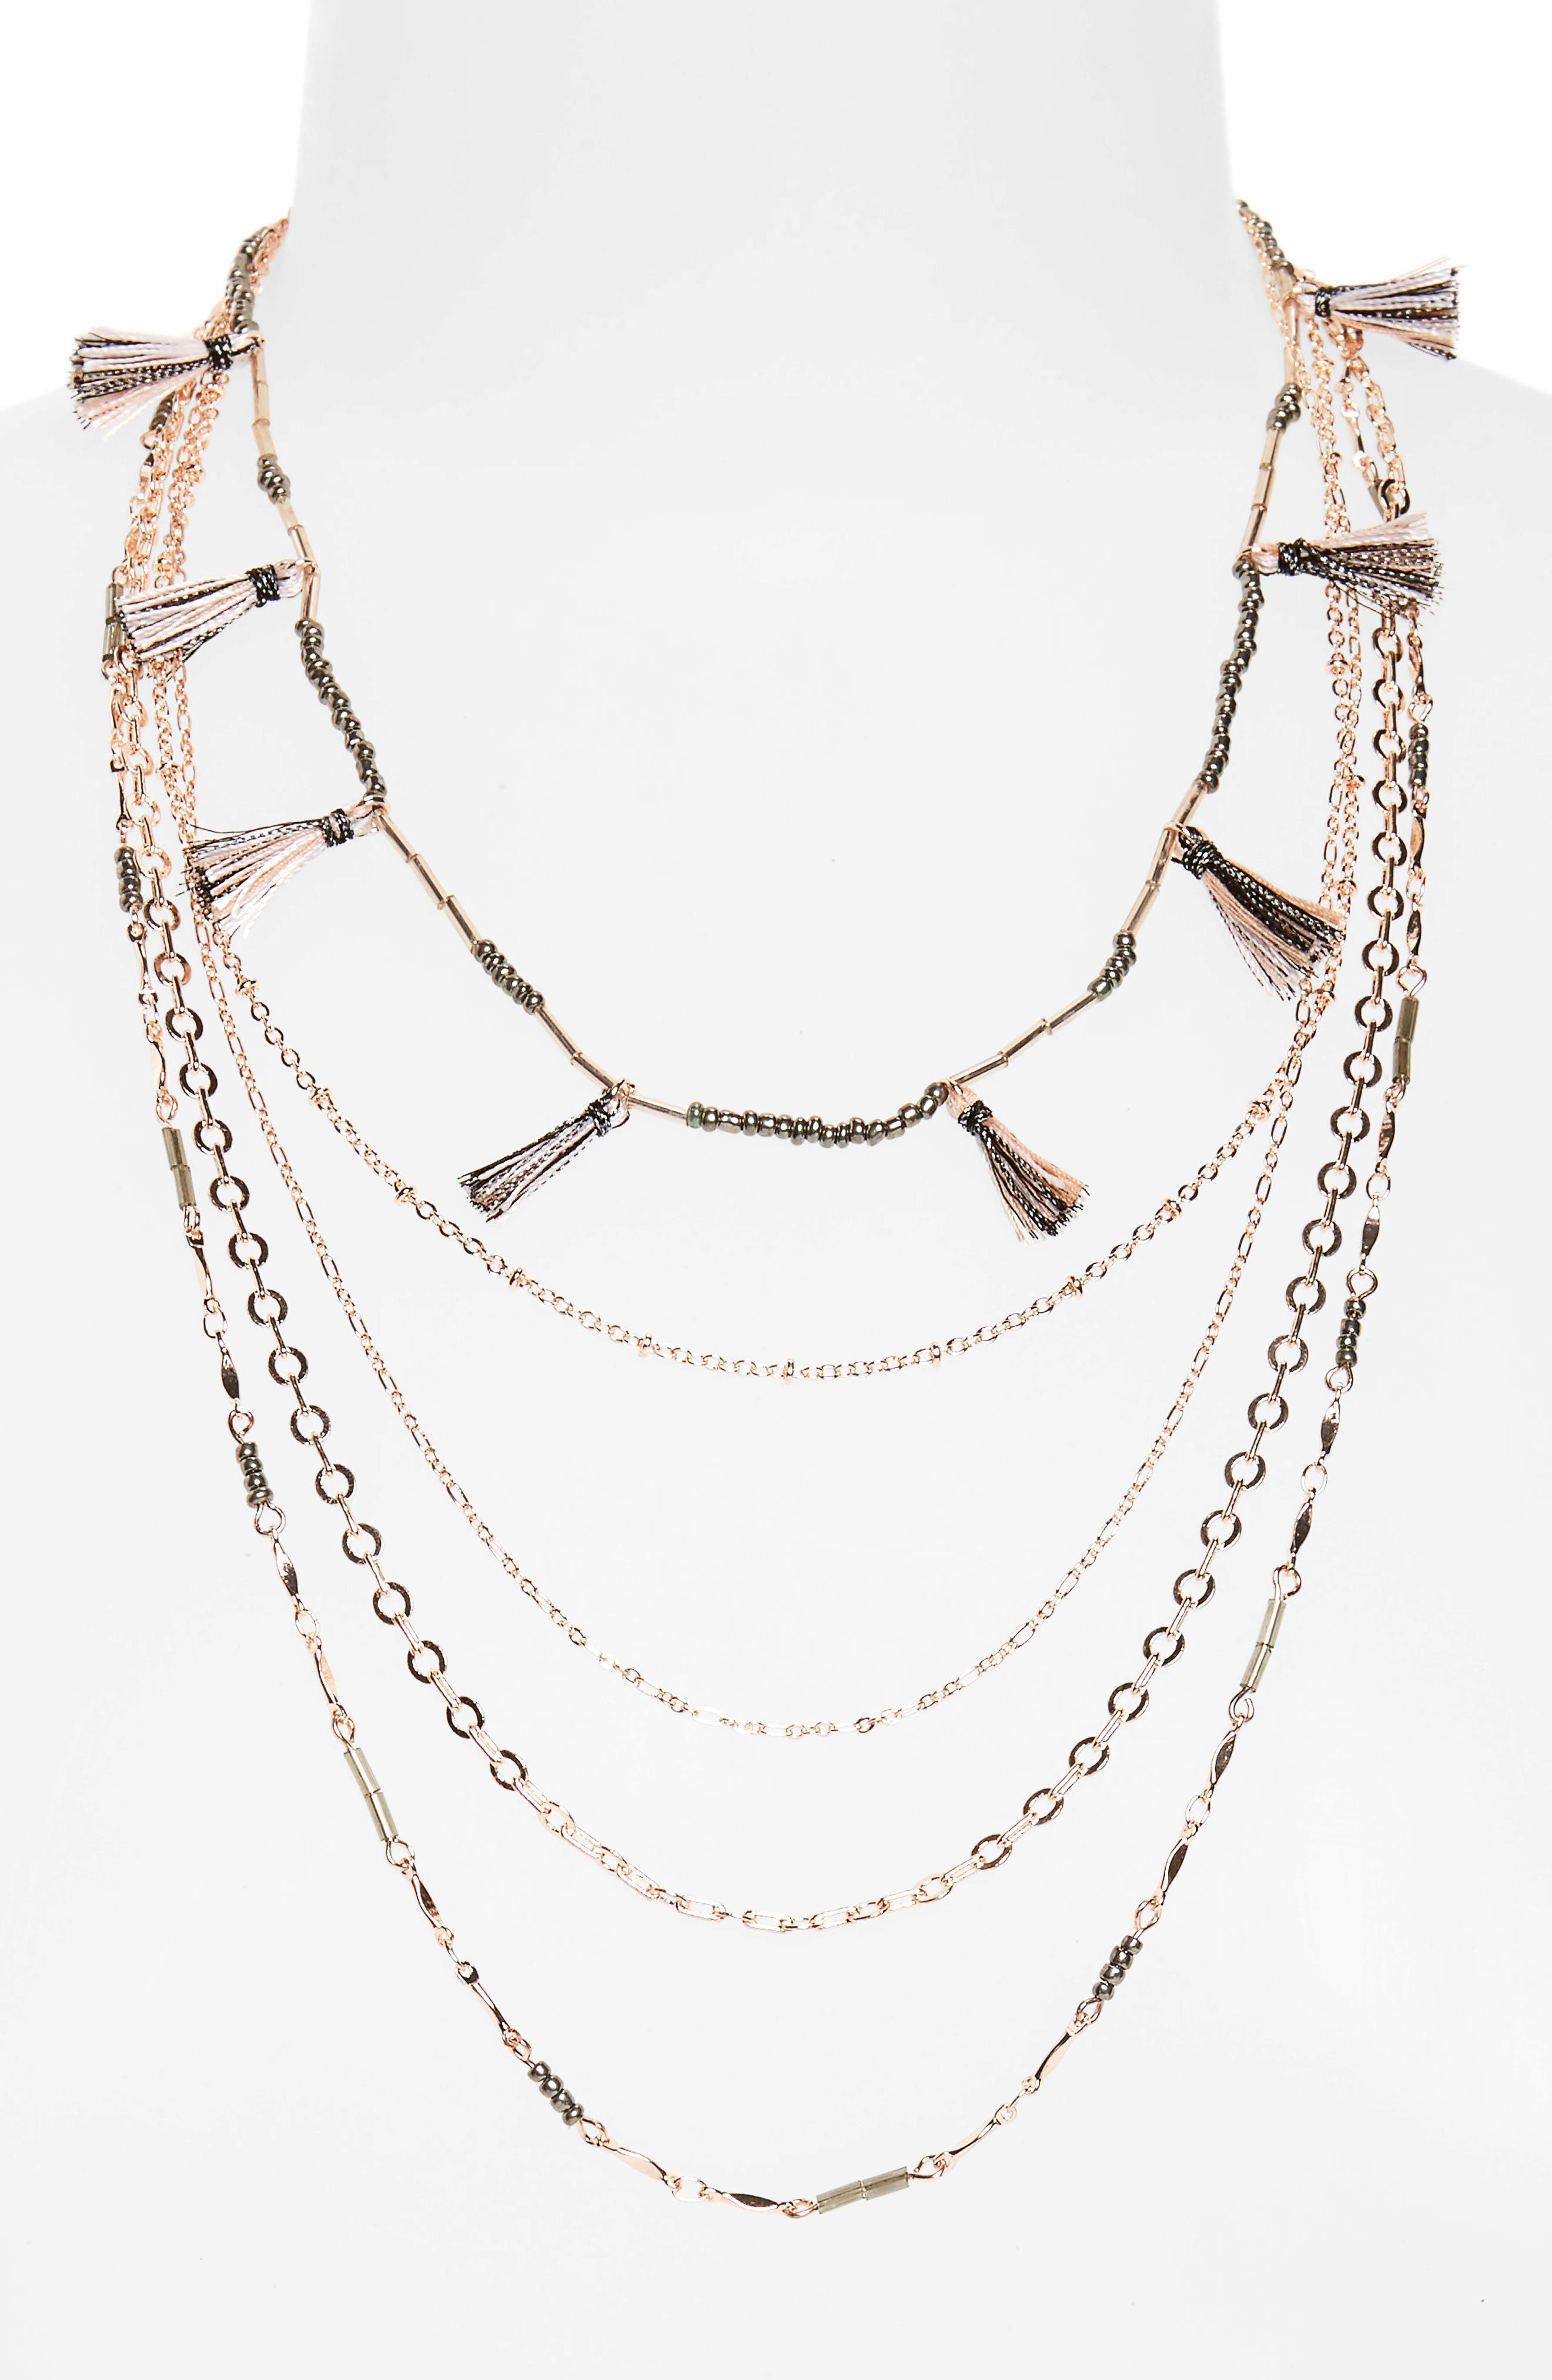 Rebecca Minkoff Long Layered Necklace with Metallic Tassels